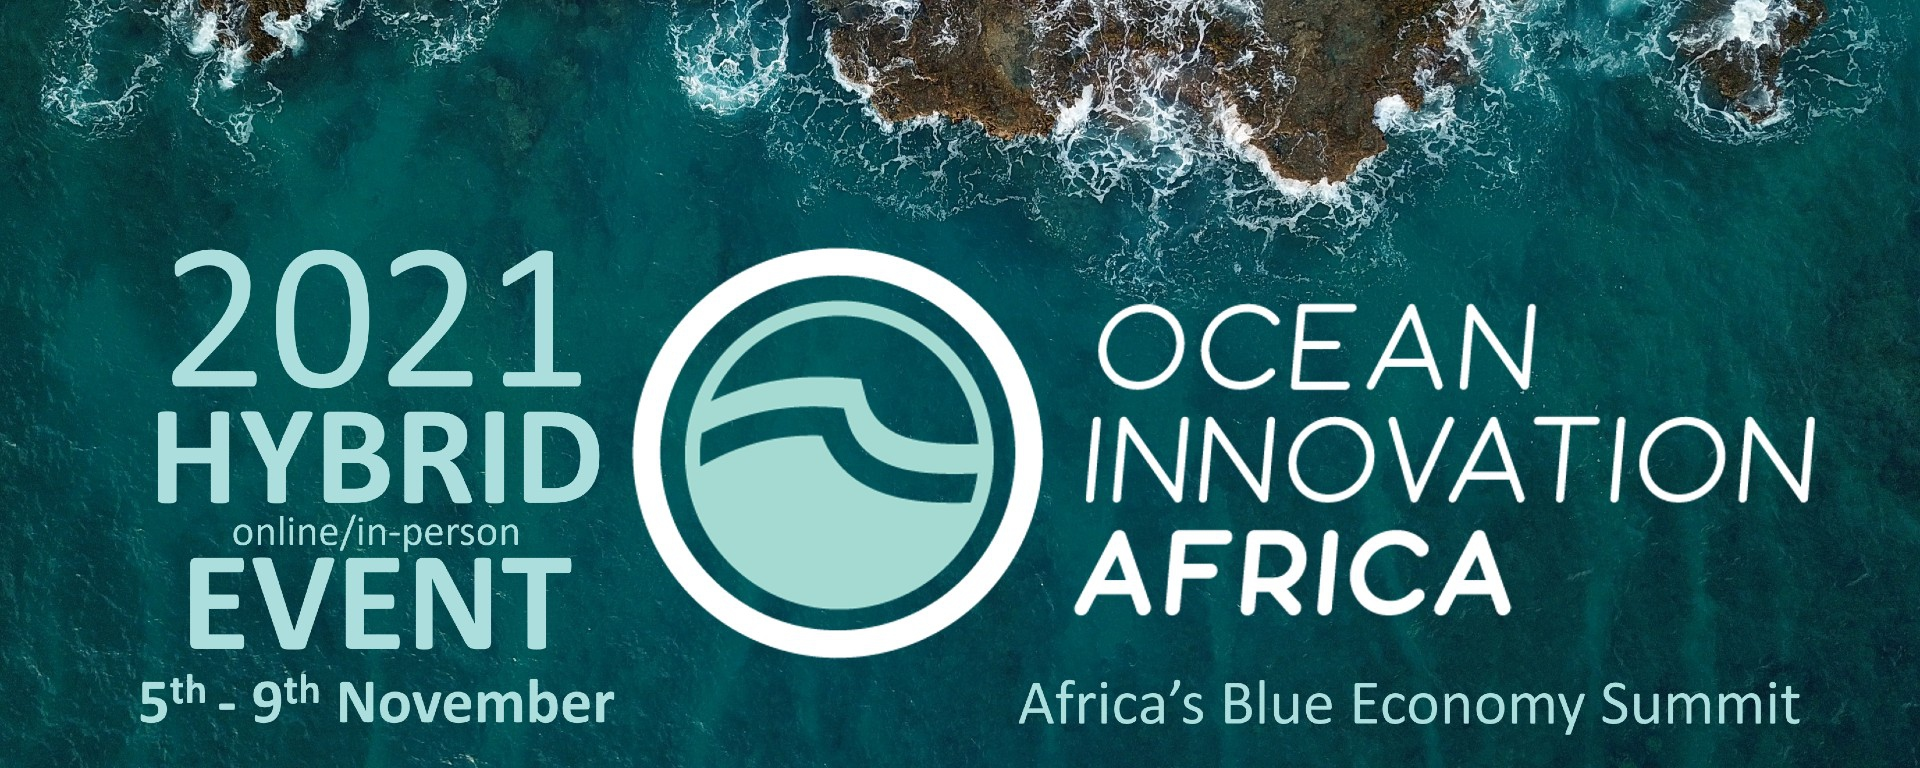 Ocean Innovation Africa - Ocean Innovation Africa 2021 Movemeback African event cover image